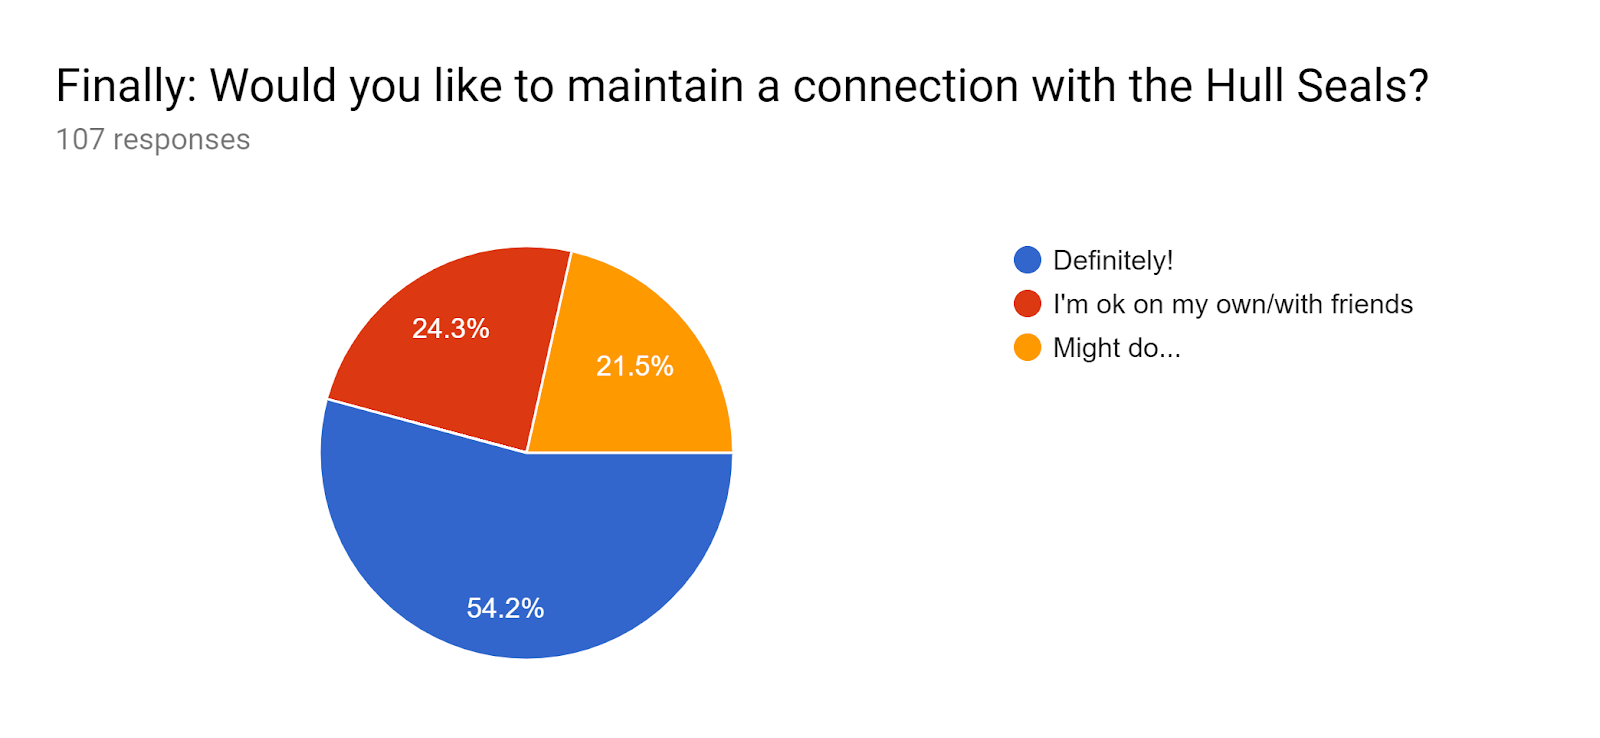 Forms response chart. Question title: Finally: Would you like to maintain a connection with the Hull Seals?. Number of responses: 107 responses.